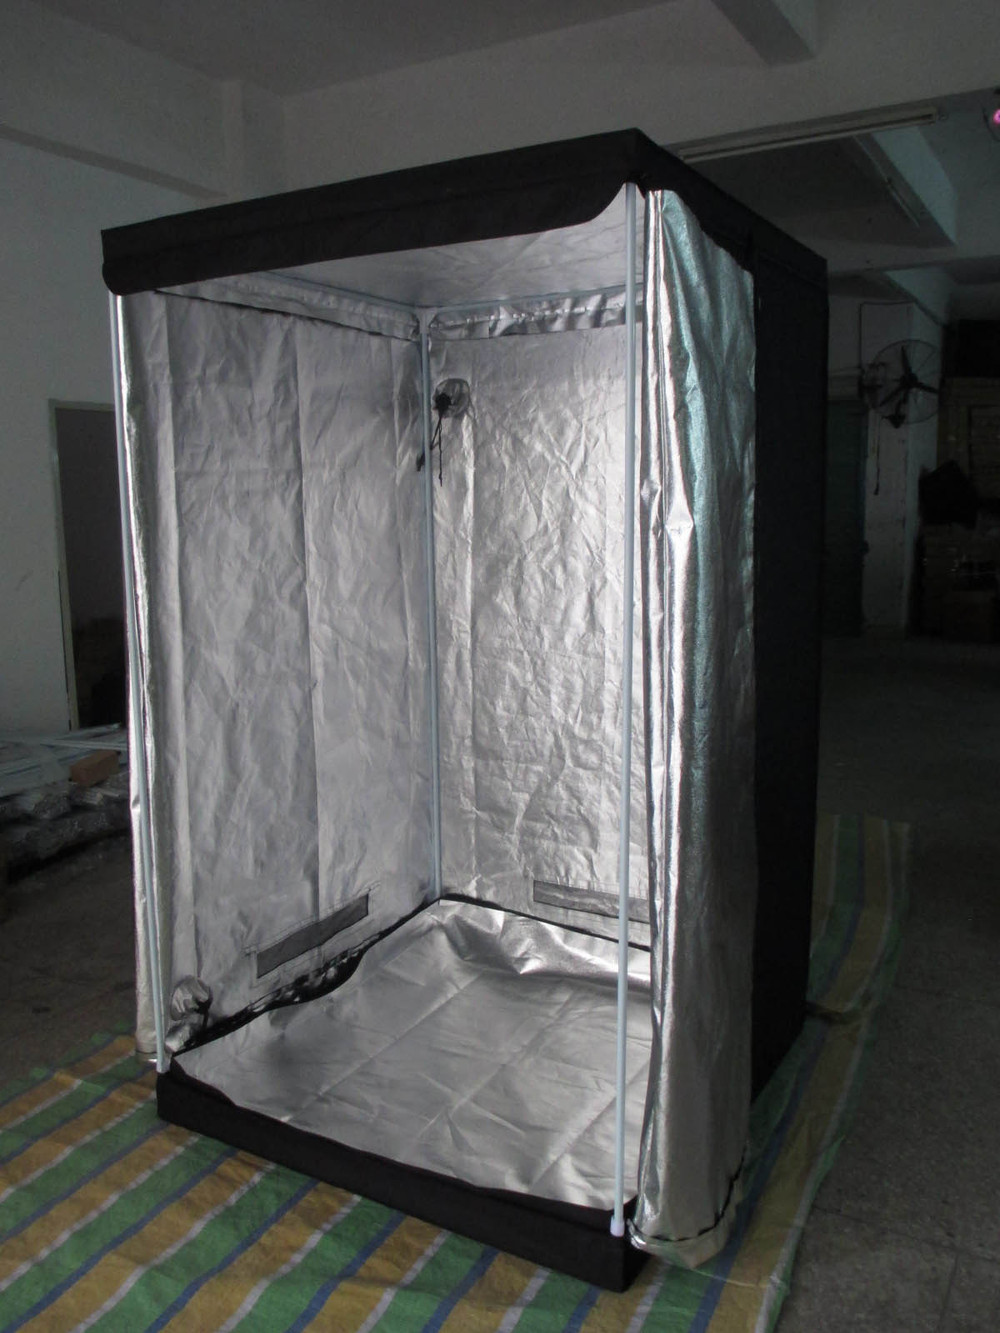 Wholesale Grow Box Grow Tent Kit Cheap Grow Tents - Buy Hydroponic Grow TentCustom Grow Tents600d Mylar Grow Tent Product on Alibaba.com & Wholesale Grow Box Grow Tent Kit Cheap Grow Tents - Buy Hydroponic ...